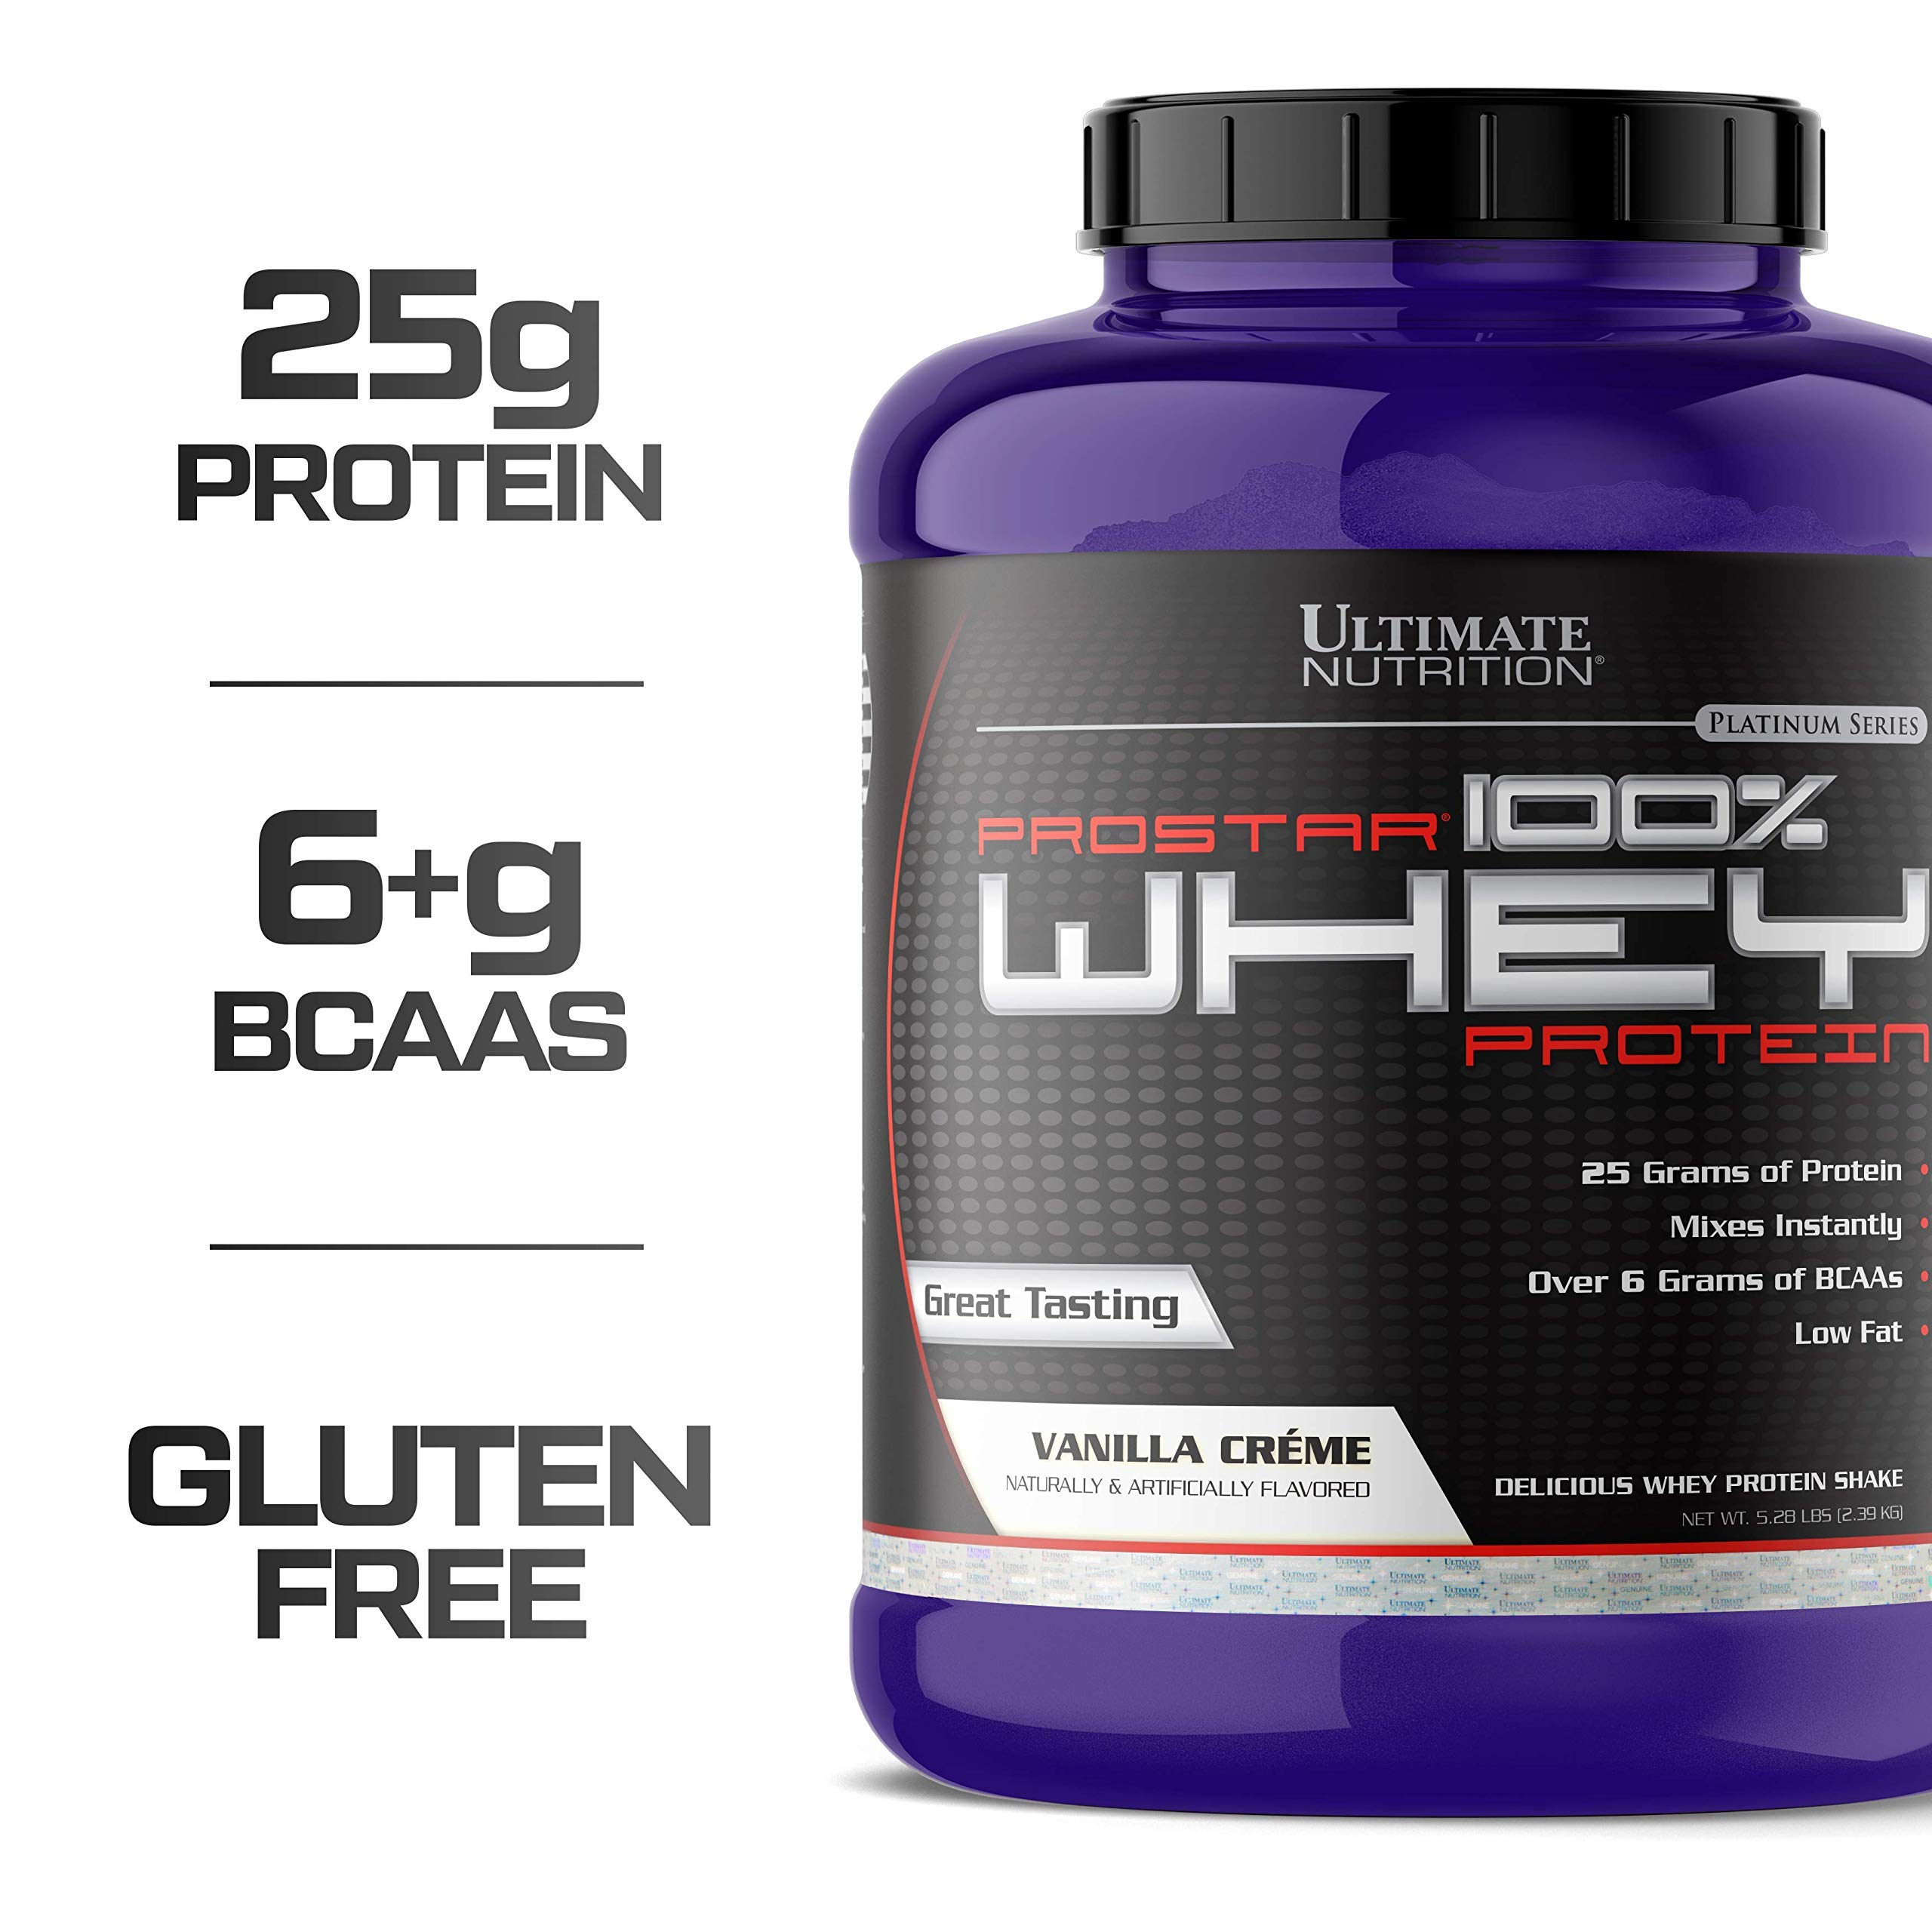 Ultimate Nutrition PROSTAR 100% Whey Protein Powder - Low Carb, Keto Friendly - 80 Servings, Vanilla Crème, 5.28 Pounds by Ultimate Nutrition